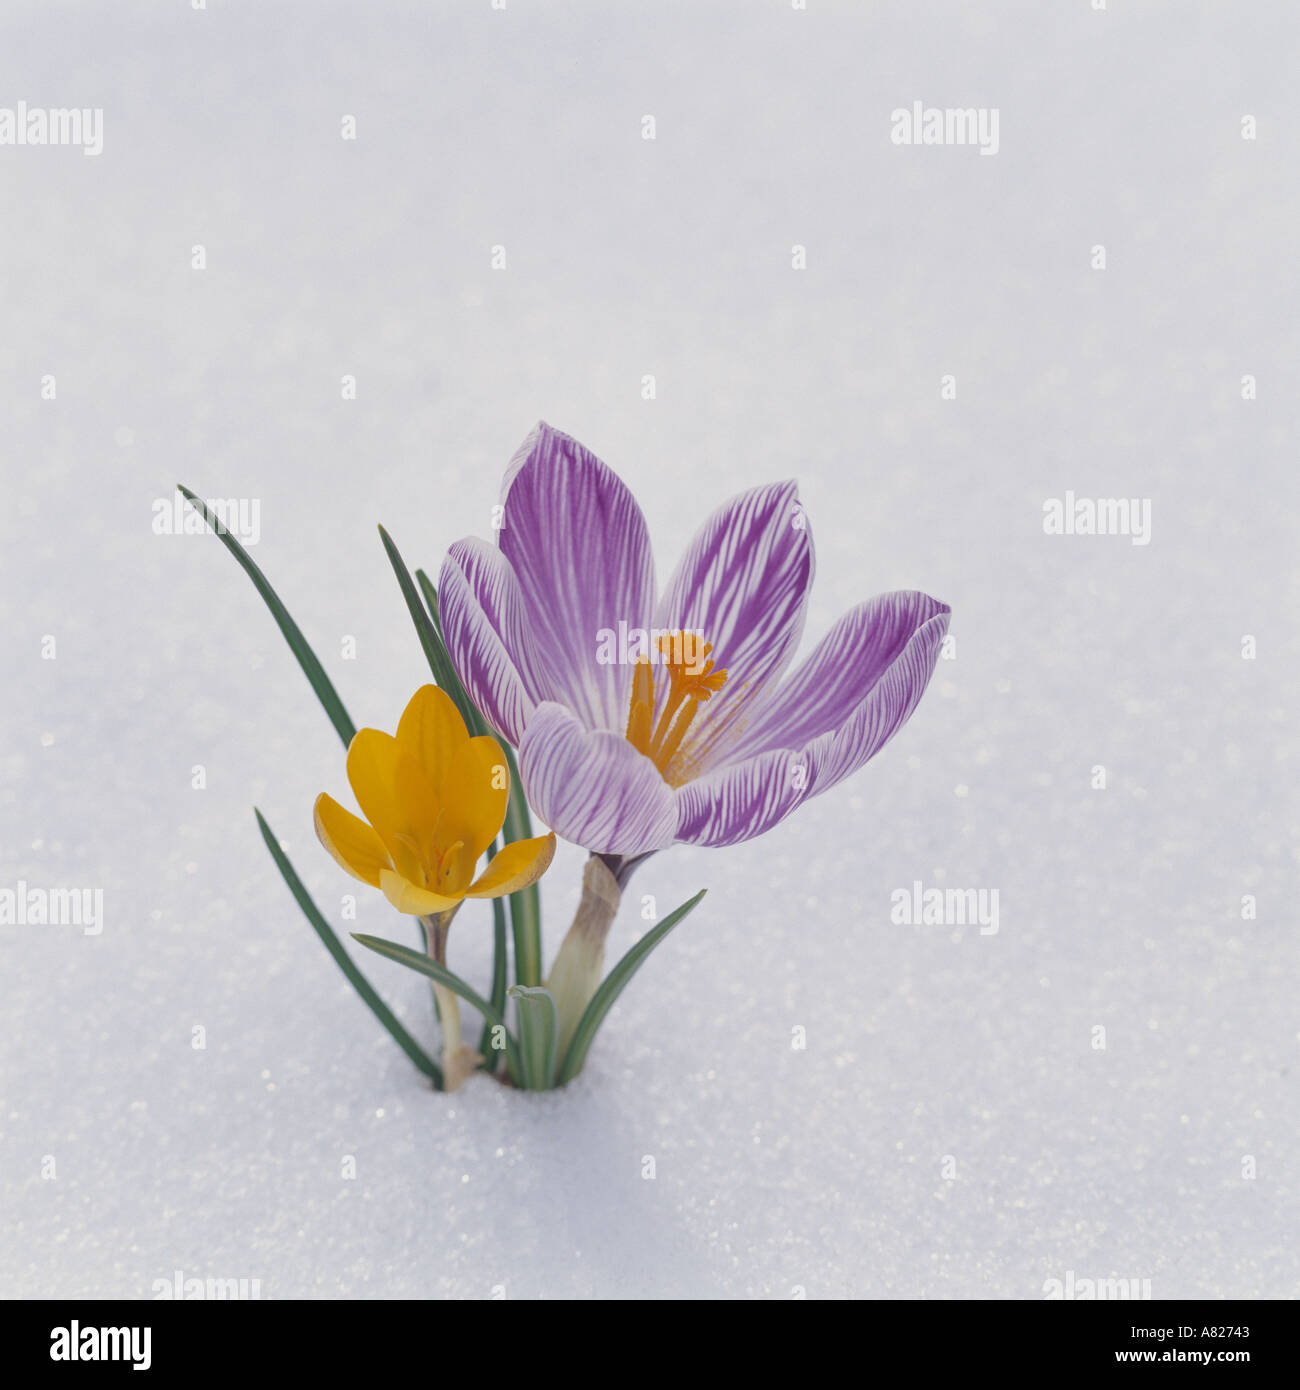 Yellow and Purple Crocuses in Snow - Stock Image